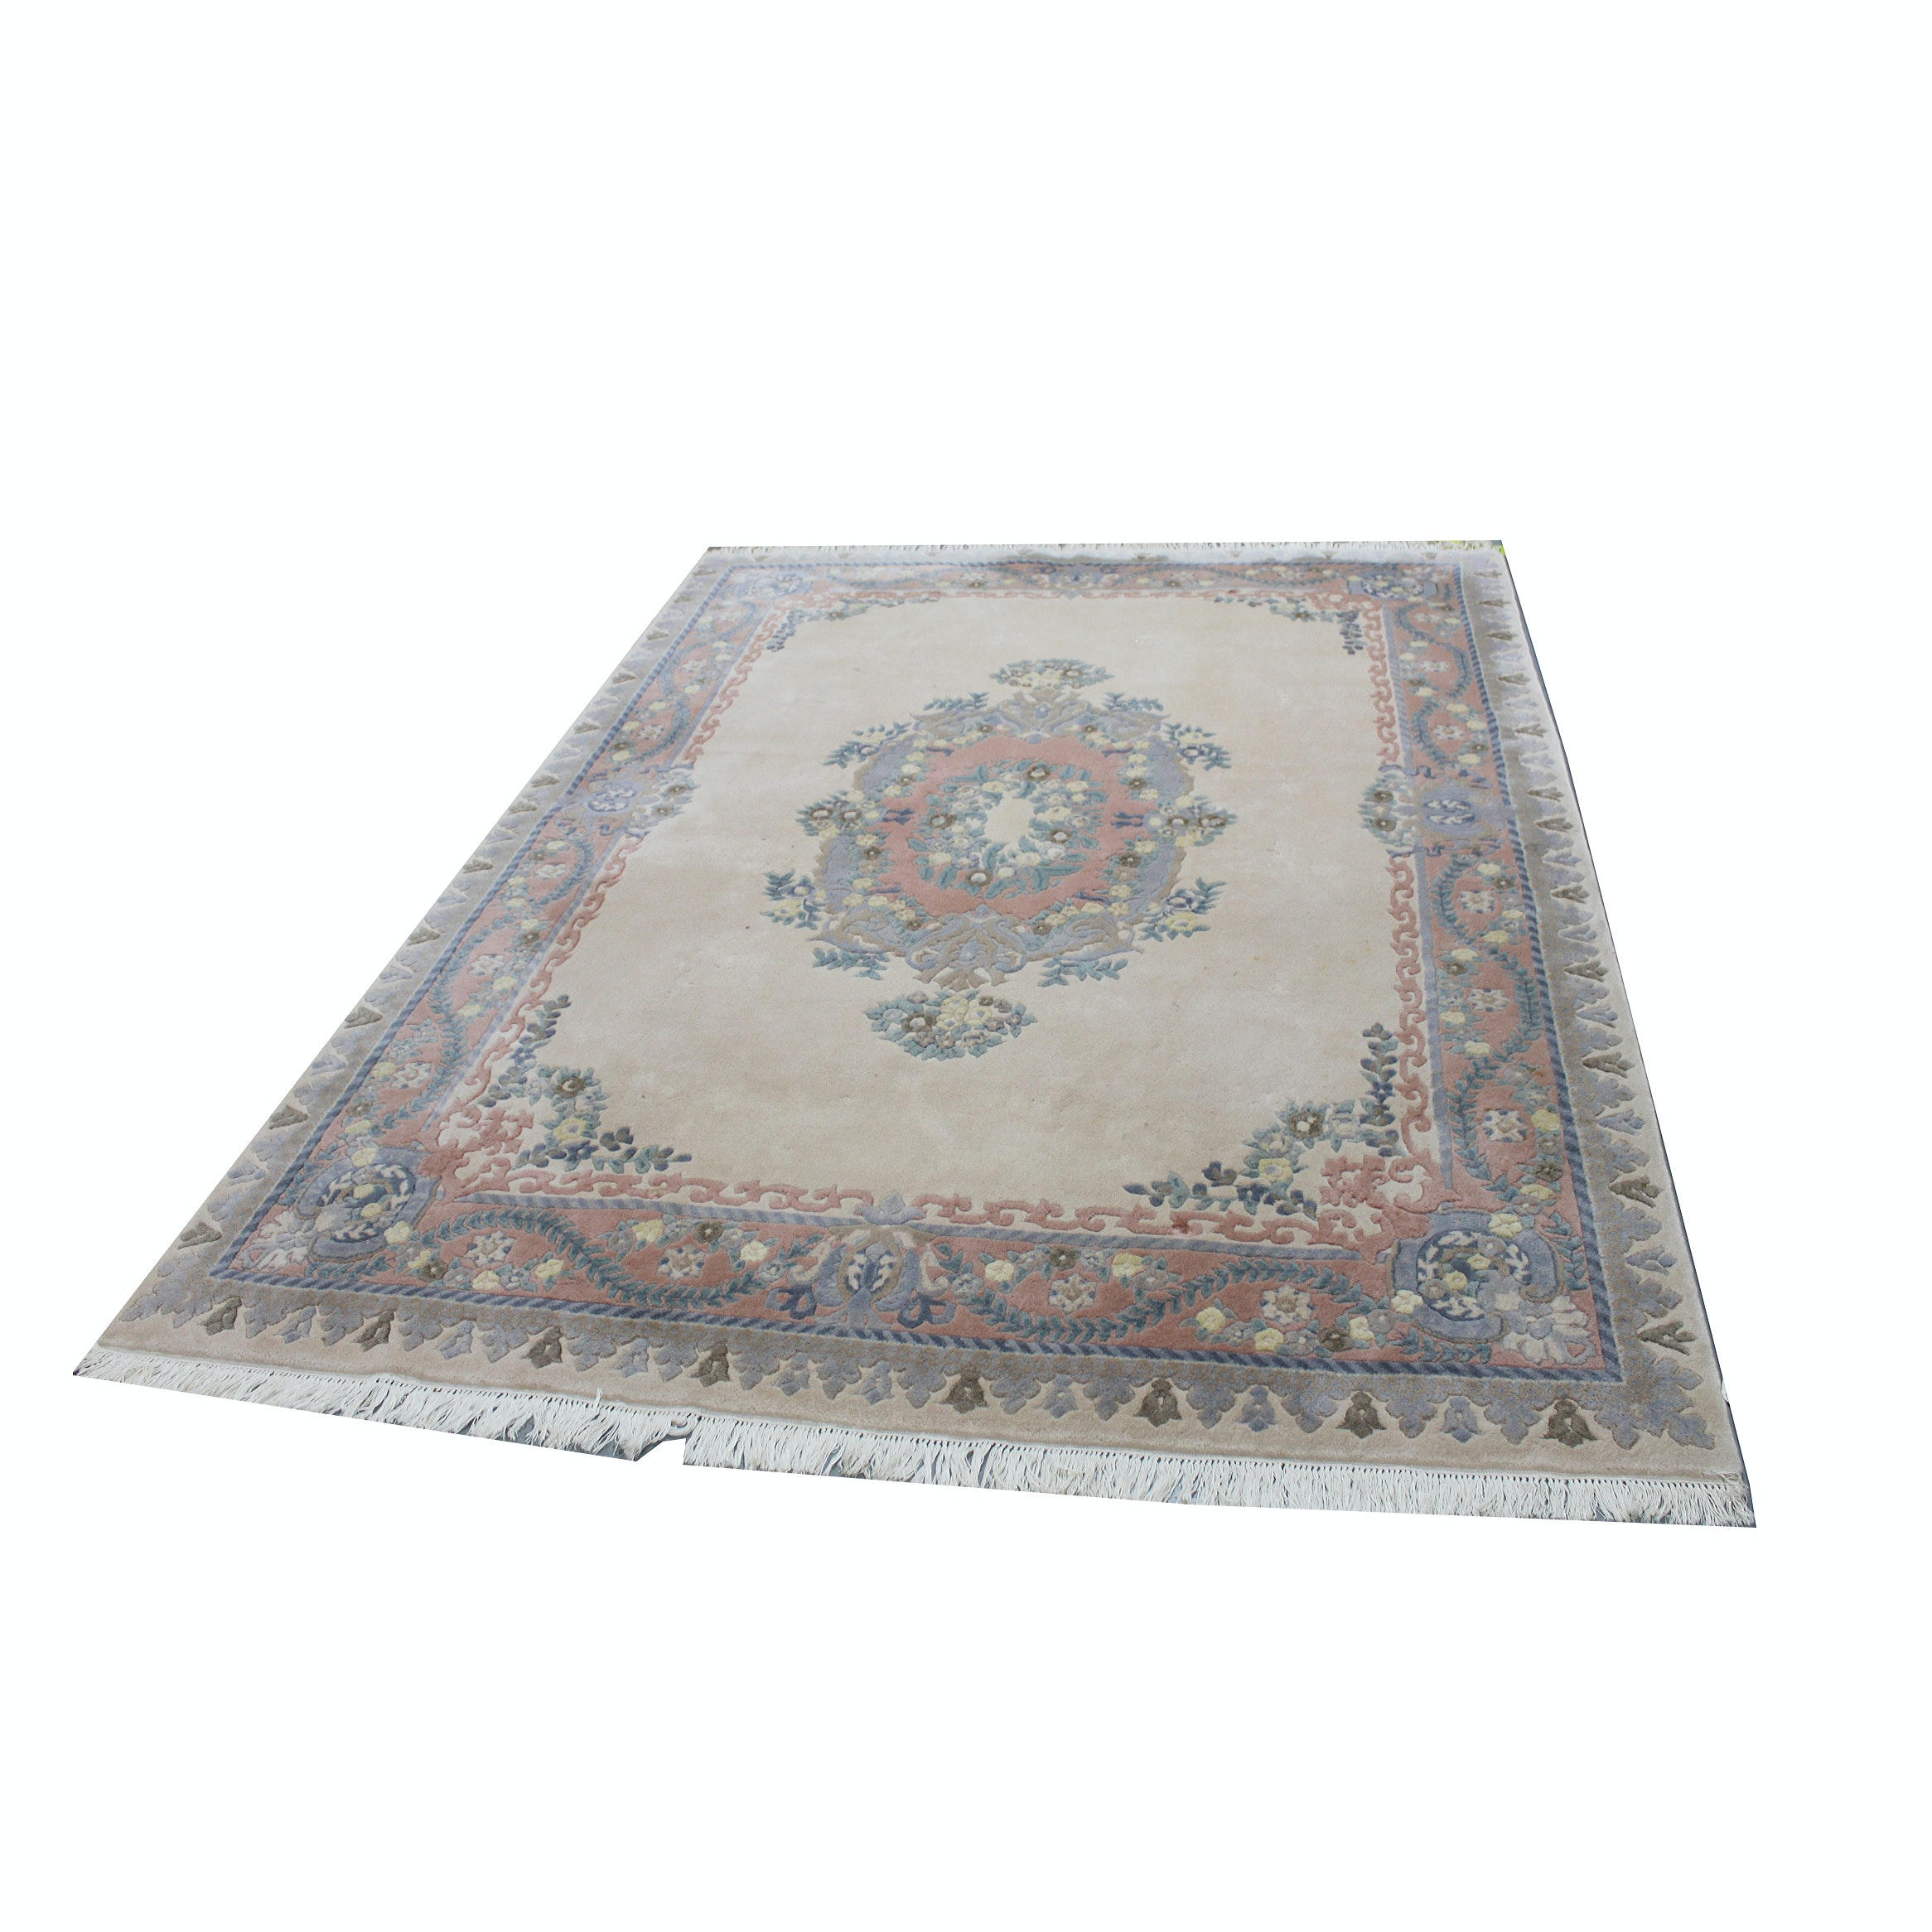 Large Hand-Knotted and Carved Pande Cameron Chinese-Style Rug